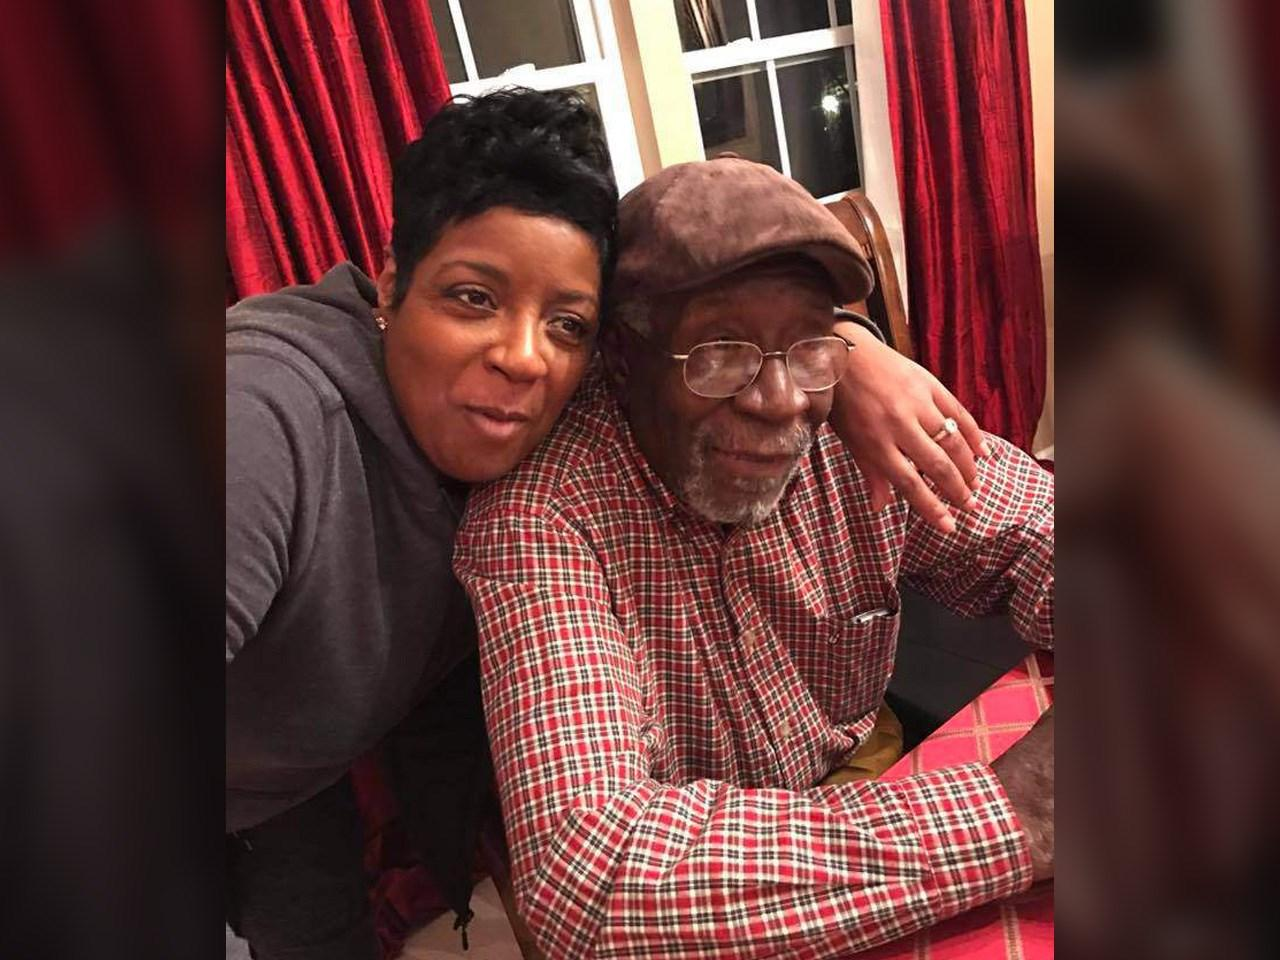 Robert Godwin Sr. with daughter Debbie. (Courtesy: Debbie Godwin/MGN)